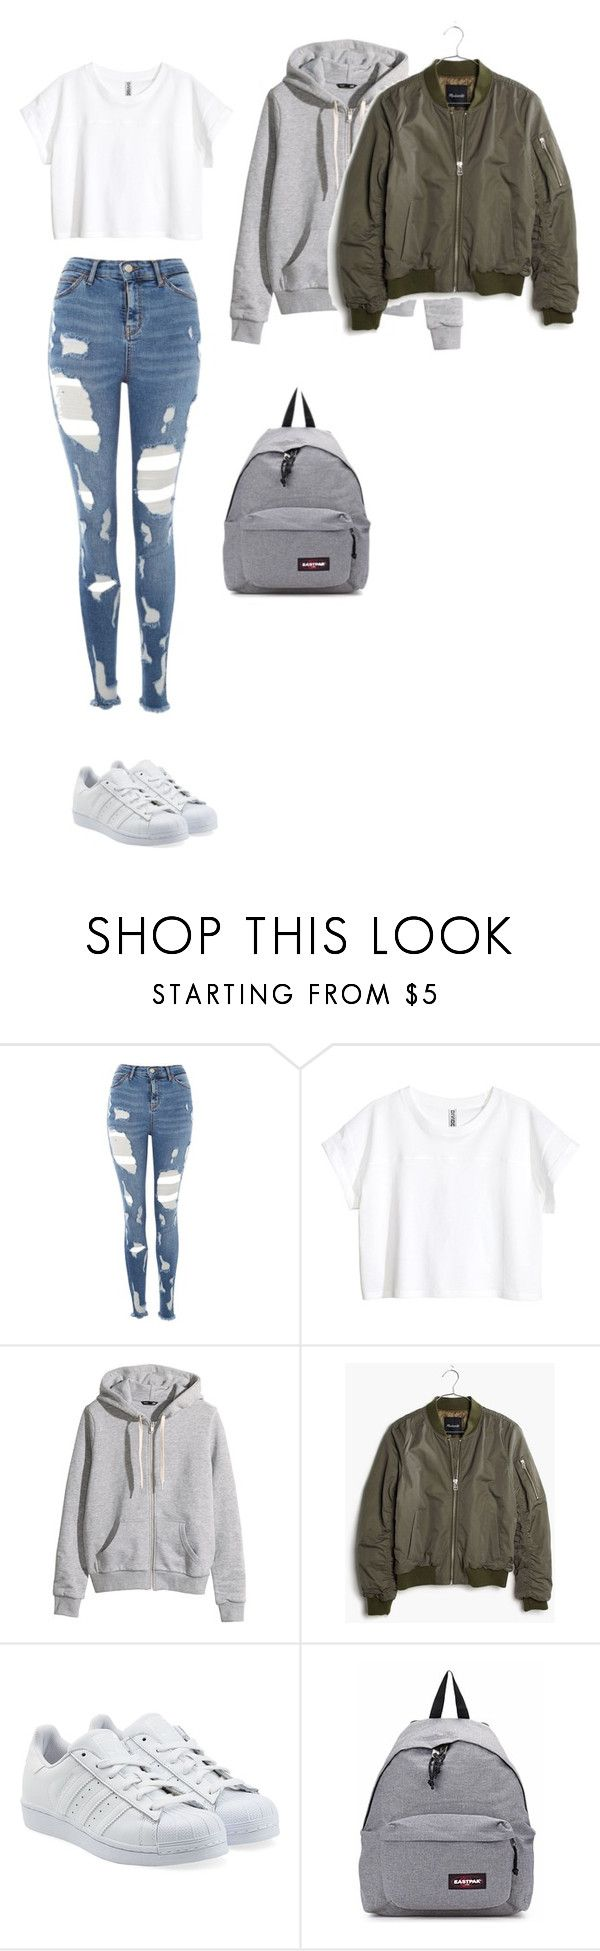 """Untitled #486"" by ericanunes on Polyvore featuring Topshop, H&M, Madewell, adidas Originals and Eastpak"